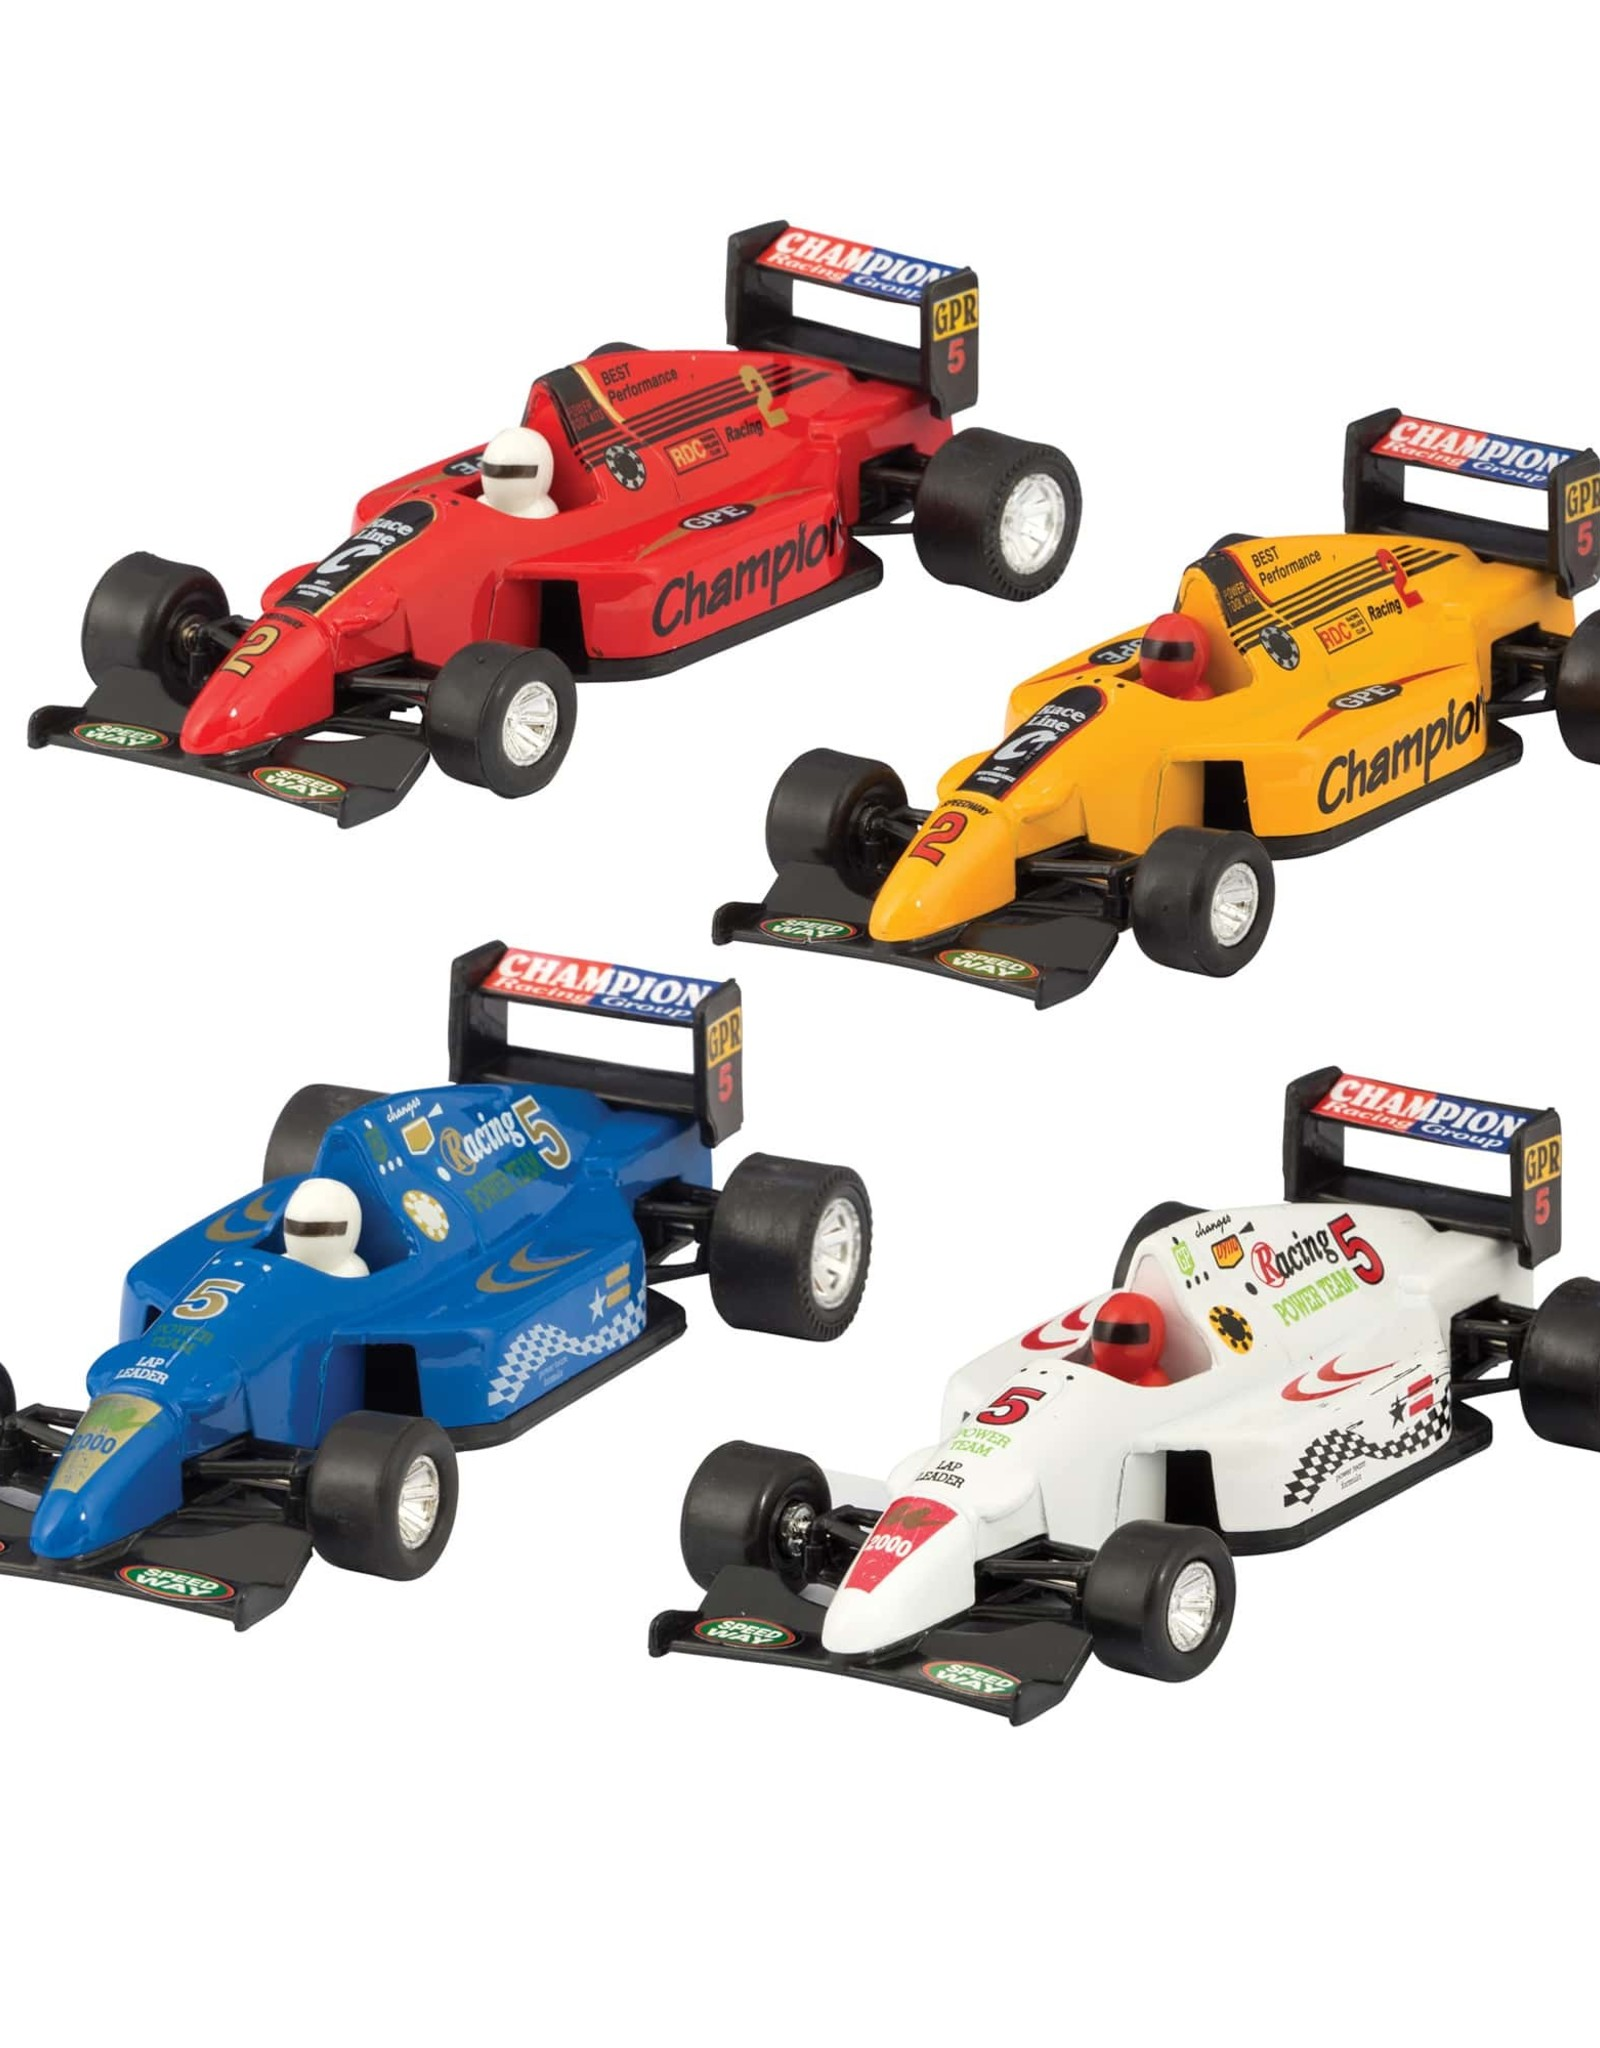 Schylling Formula One Race Cars